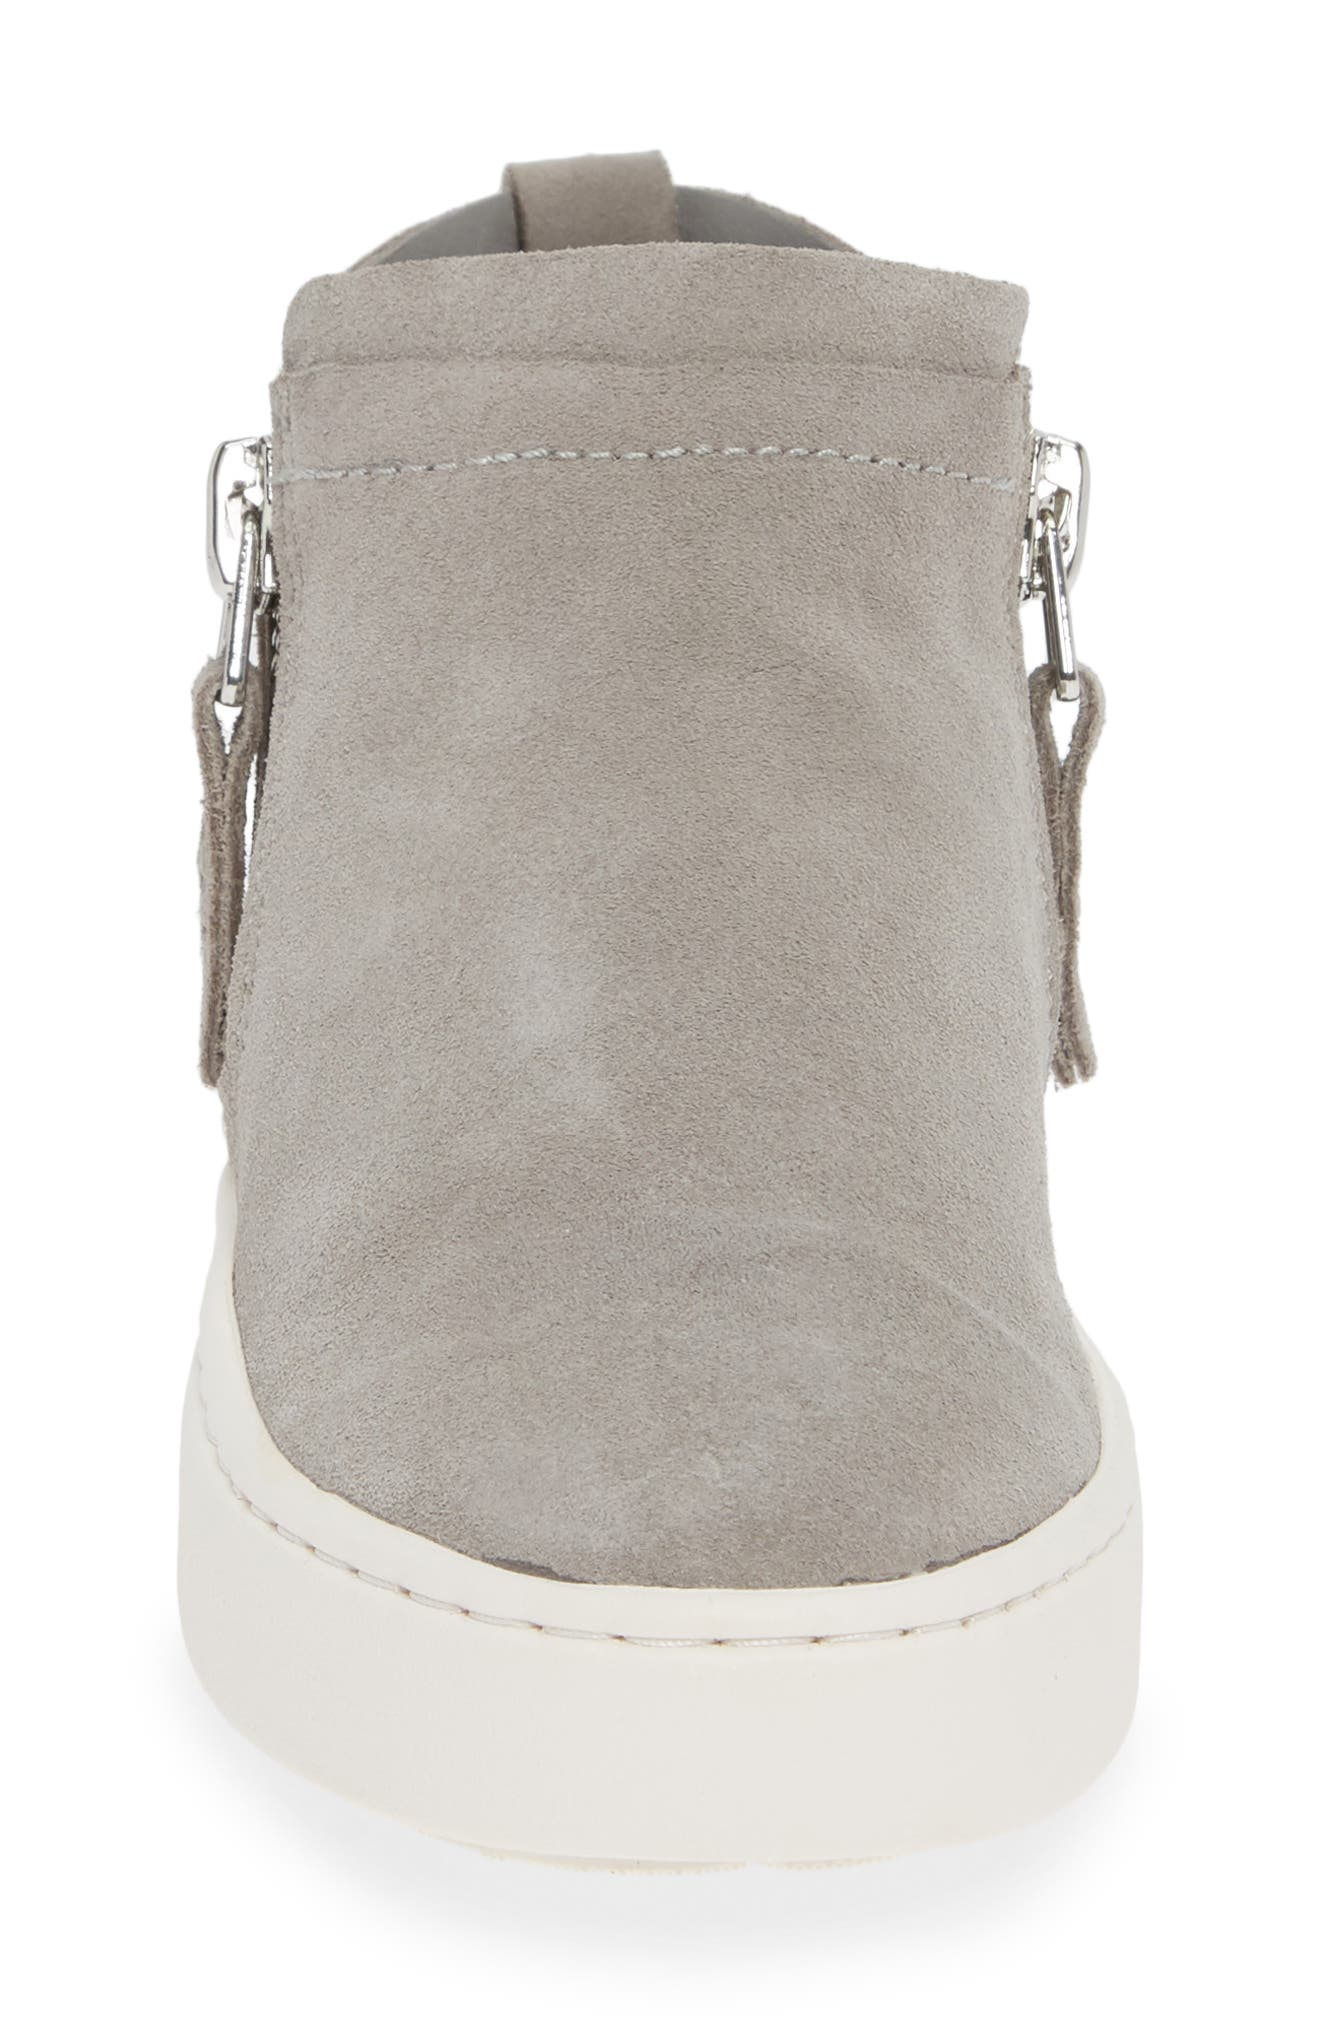 DOLCE VITA, Tobee Zip Sneaker, Alternate thumbnail 4, color, SMOKE SUEDE